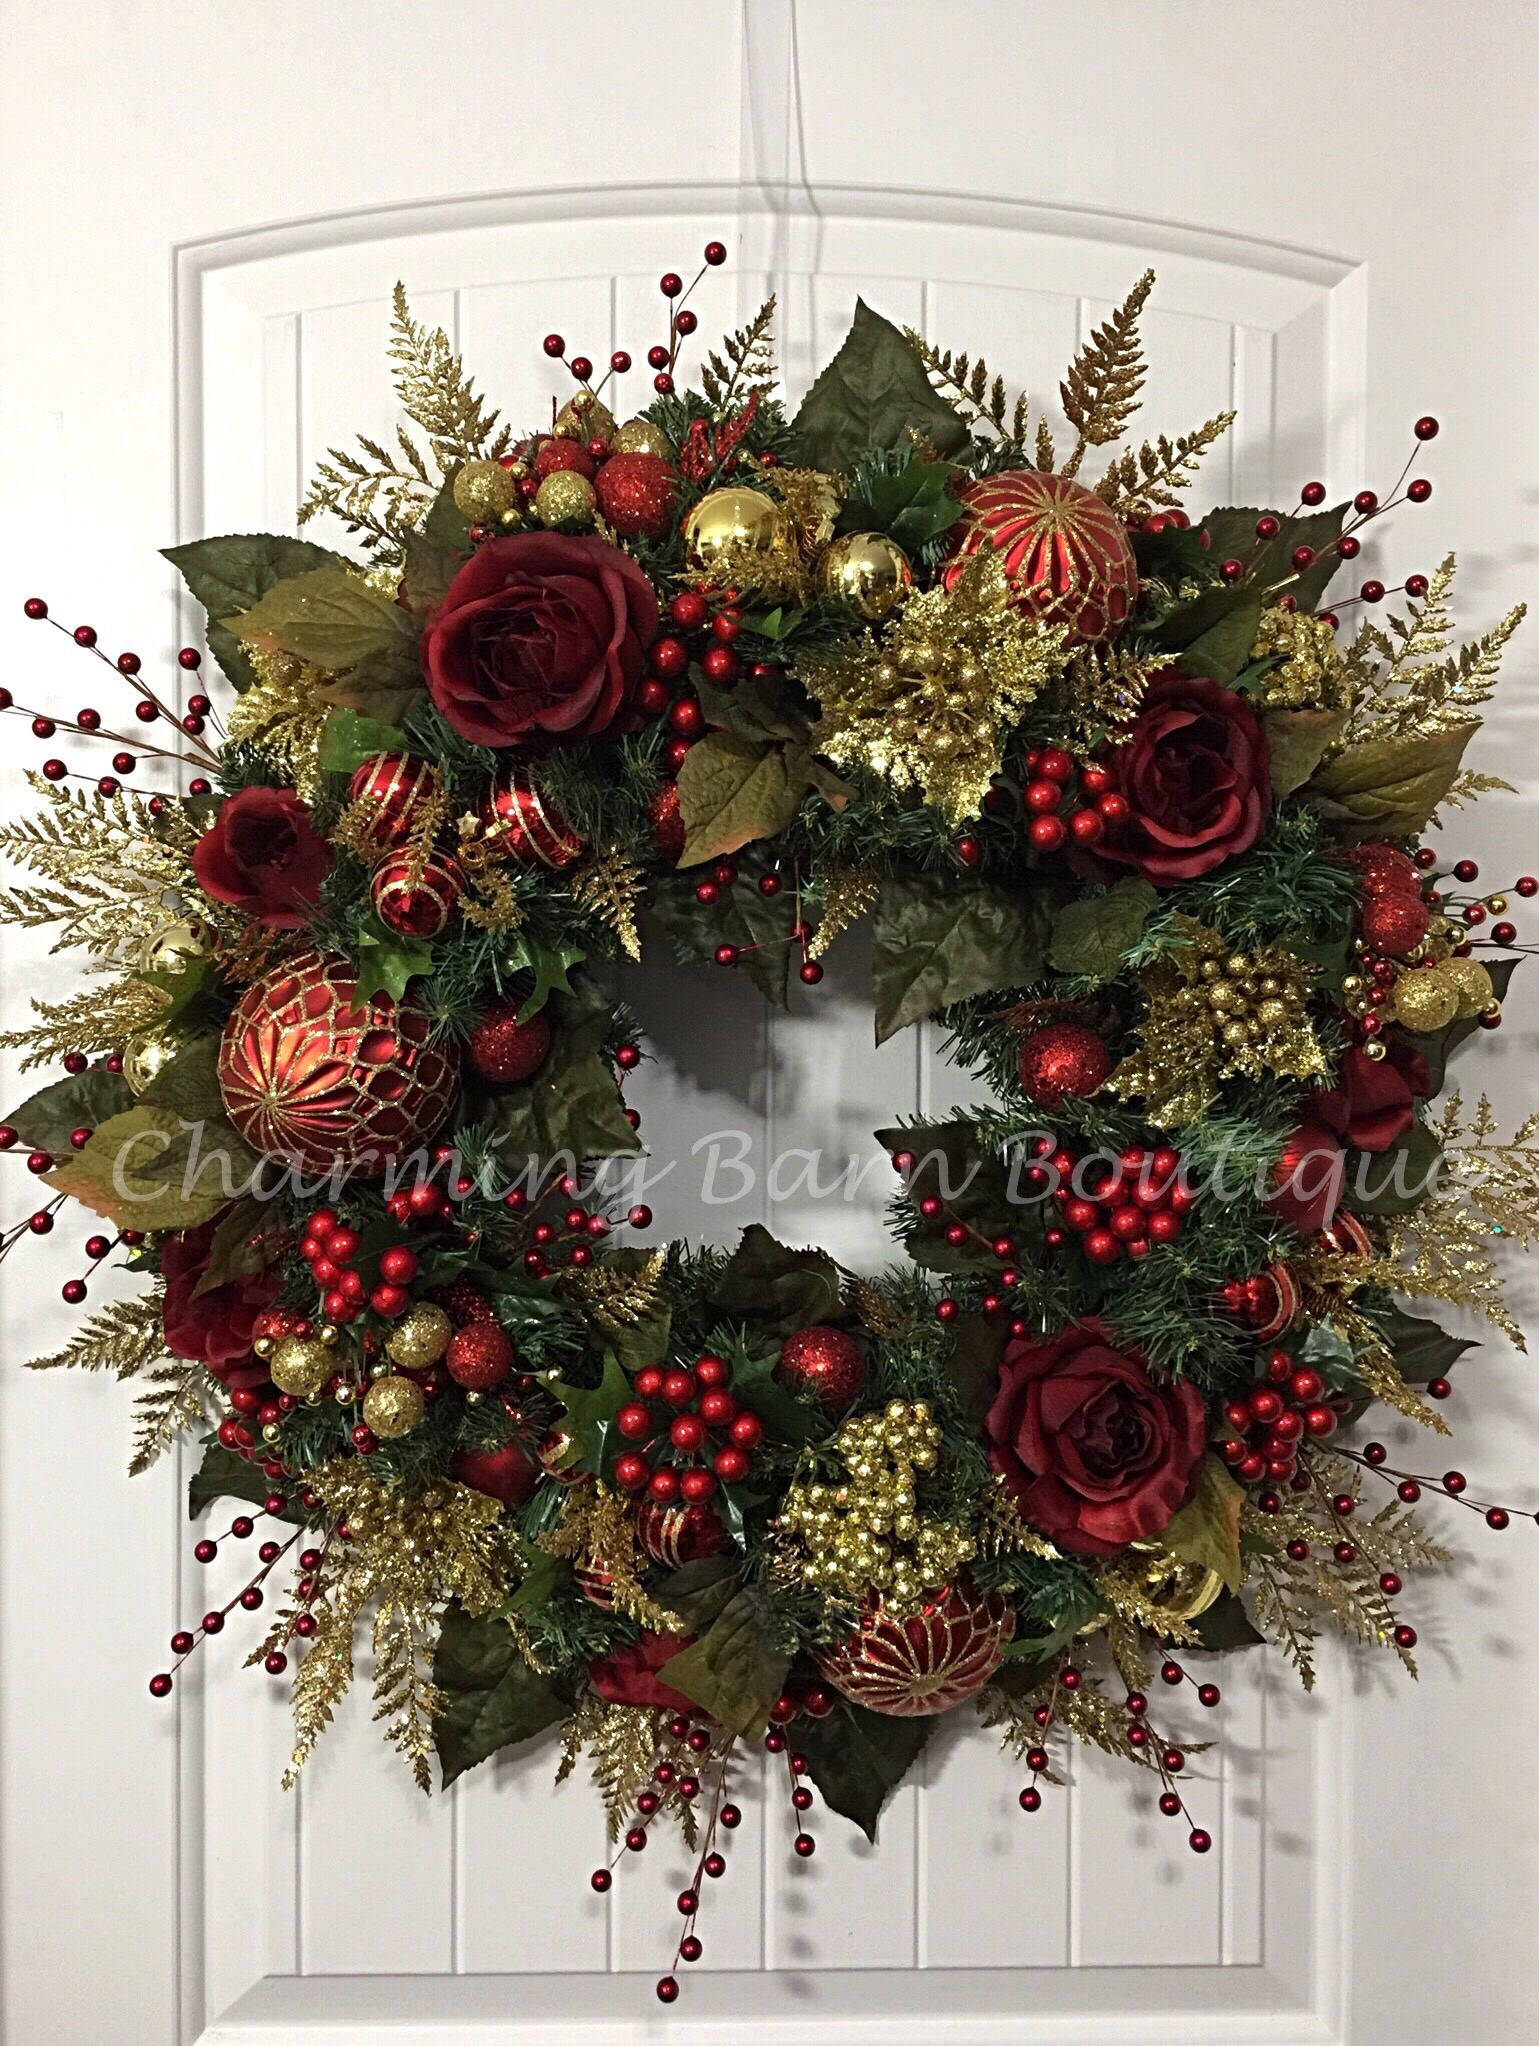 Christmas Wreath Winter Wreath Elegant Christmas Holiday Wreath Evergreen Wreath Red And Gold Wreath Holiday Decor Christmas Decor Christmas Wreaths Christmas Decorations Holiday Wreaths